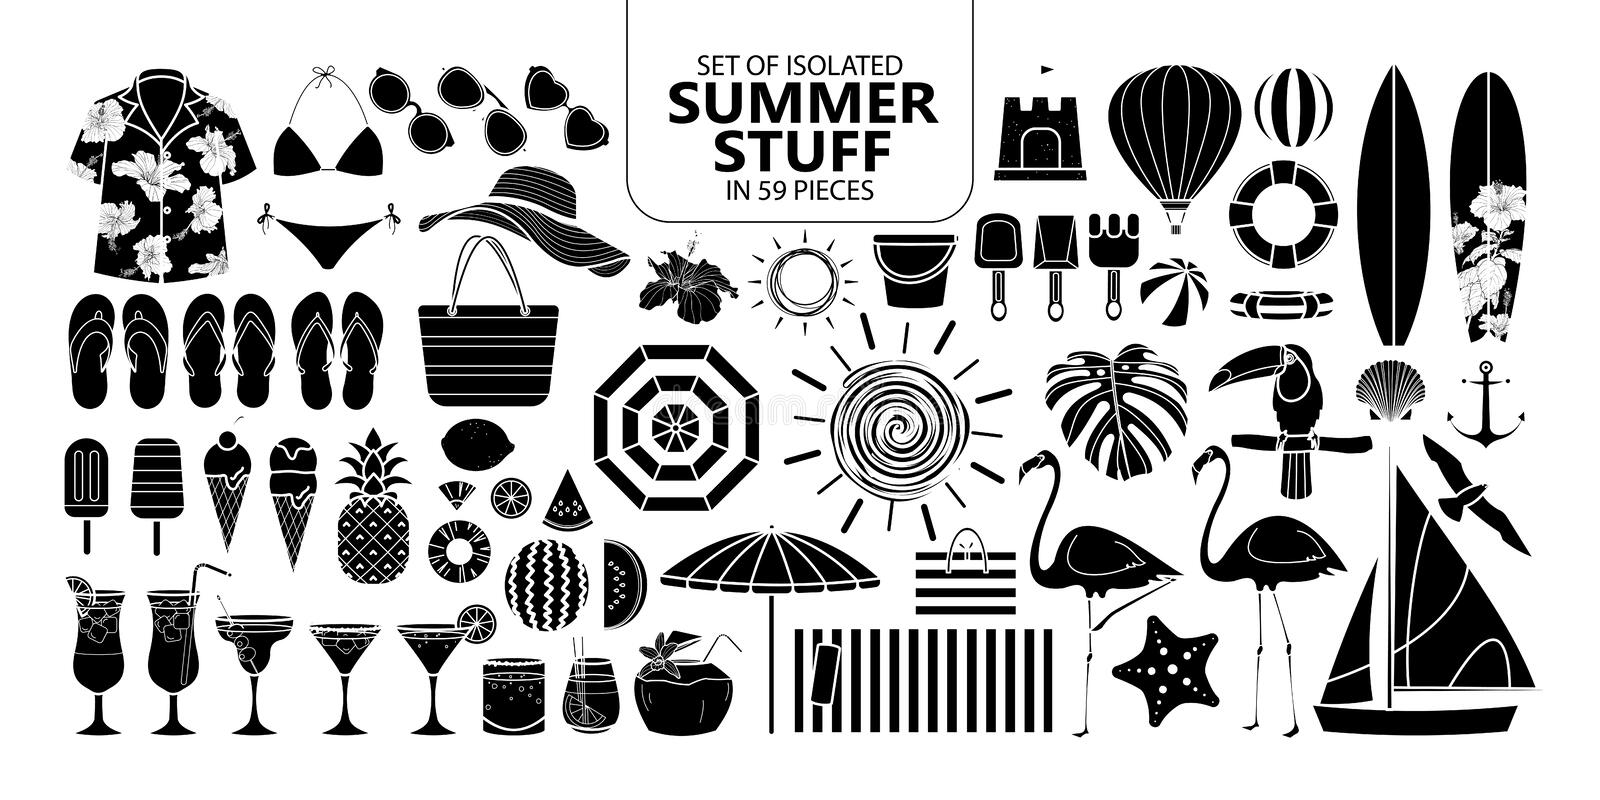 Set of isolated silhouette summer stuff in 59 pieces. vector illustration